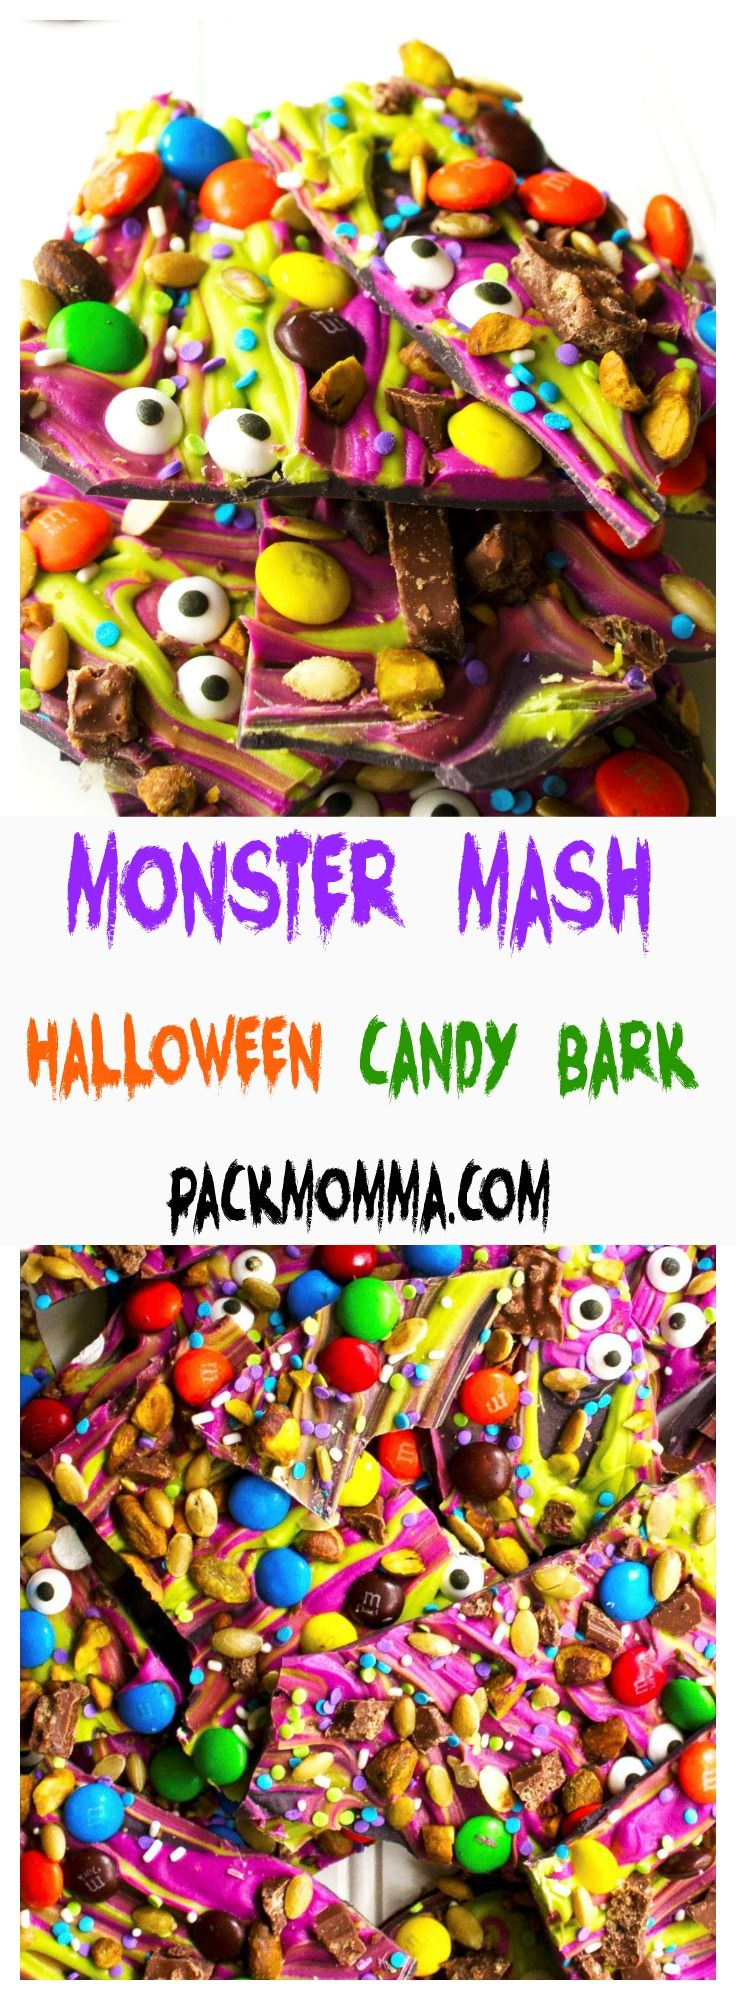 Monster Mash Halloween Candy Bark | This festive and fun no-bake Monster Mash Halloween Candy Bark is the perfect sweet treat to scare up some new friends this Halloween | Pack Momma (Halloween Bake Treats)